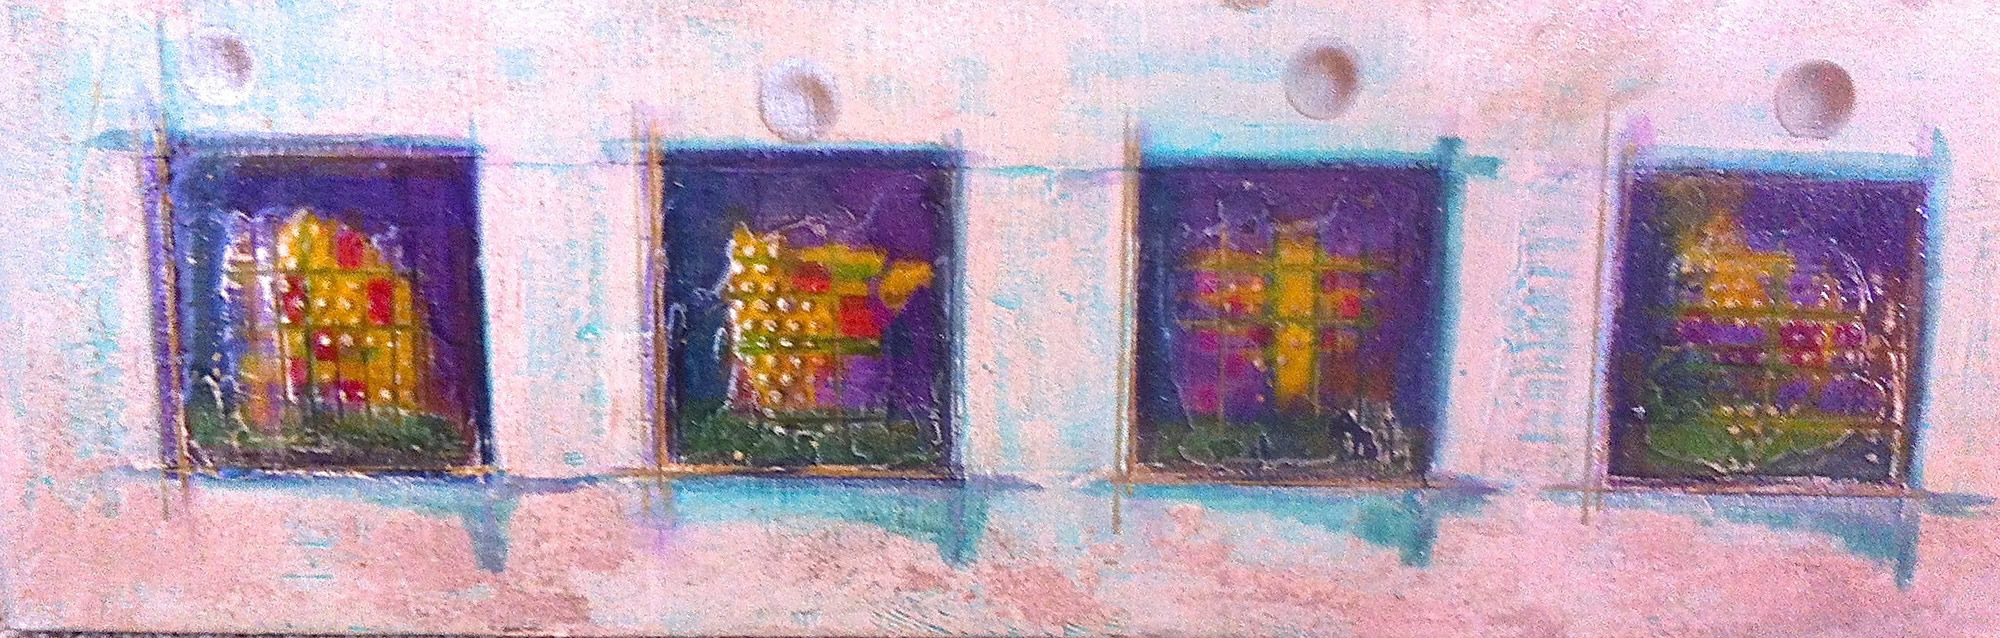 rita-schwab-cycles-of-the-moon-fresco-in-oils-and-acrylic-sand-painting-partial-resin-16x60-1600-00